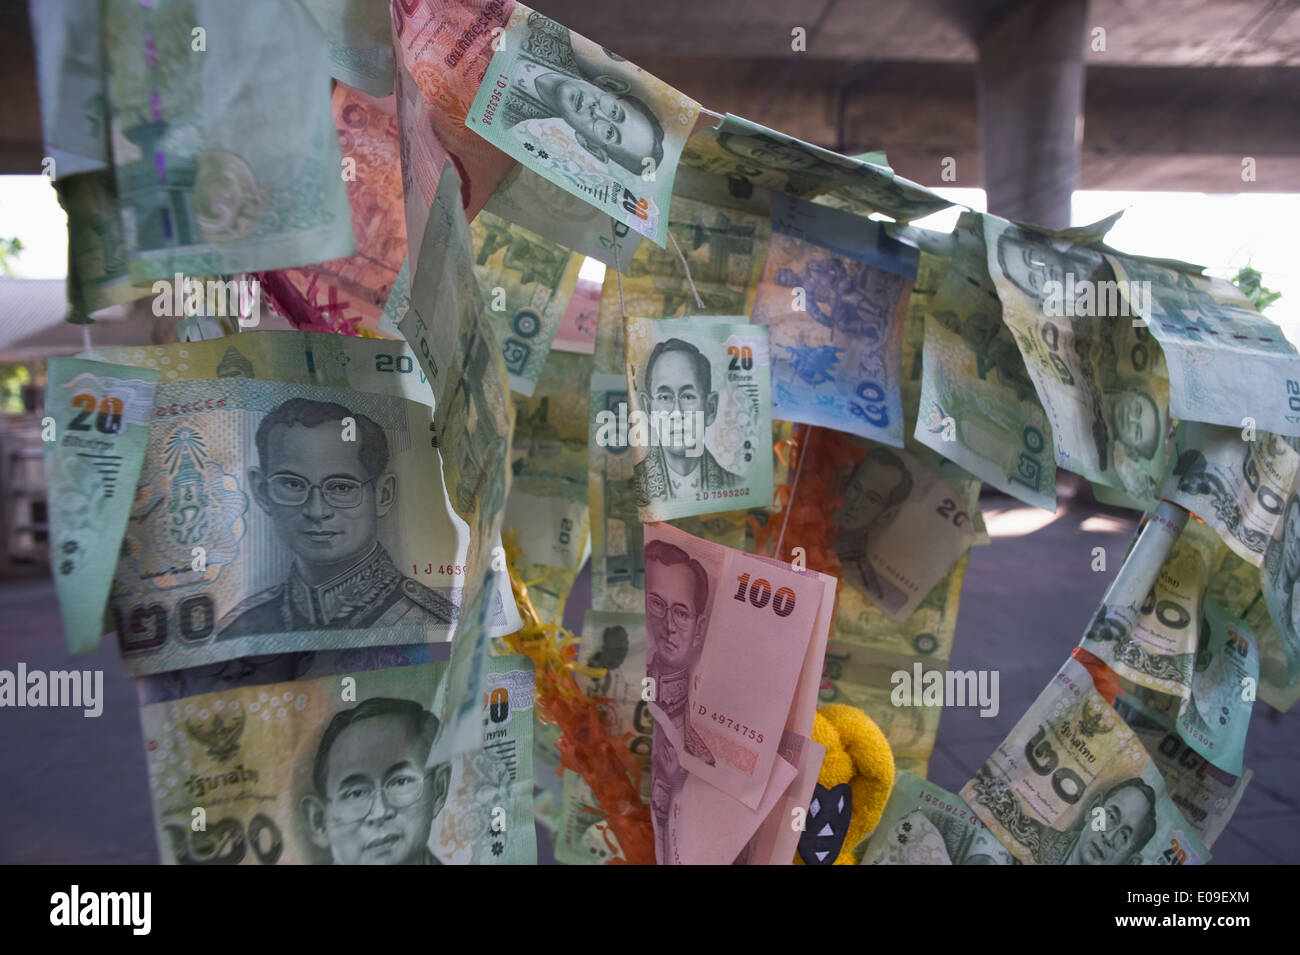 Thailand, Bangkok, Banknotes on fortune tree - Stock Image